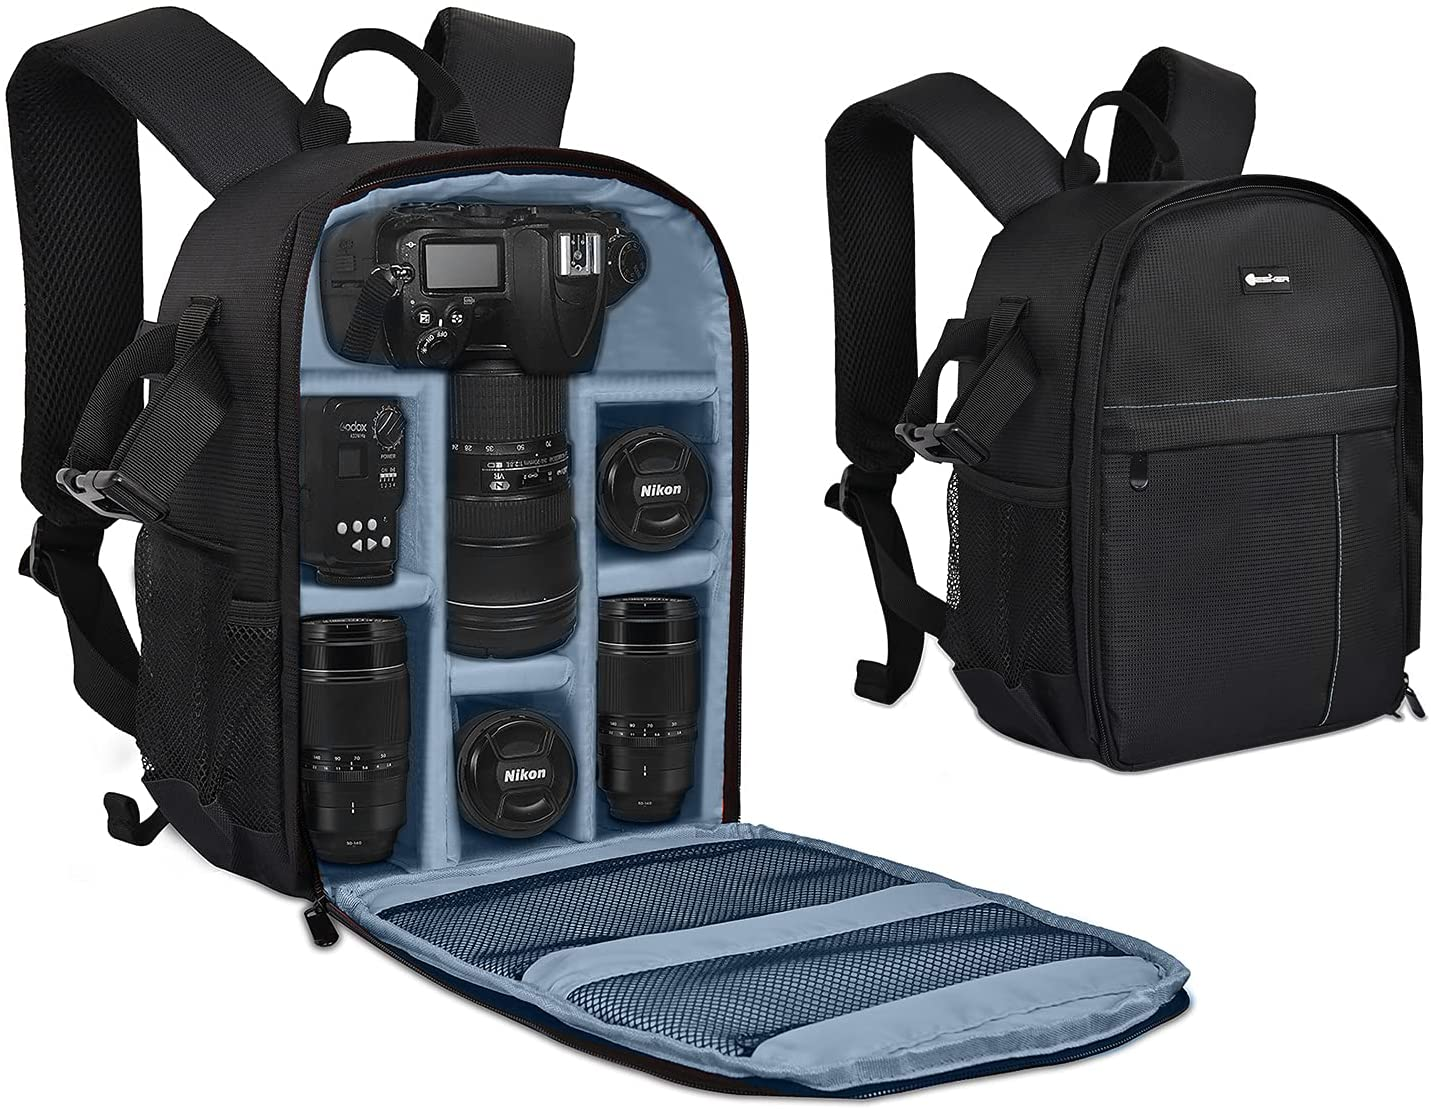 Yesker Camera All stores are sold Backpack Professional Waterpro DSLR Bag SLR cheap